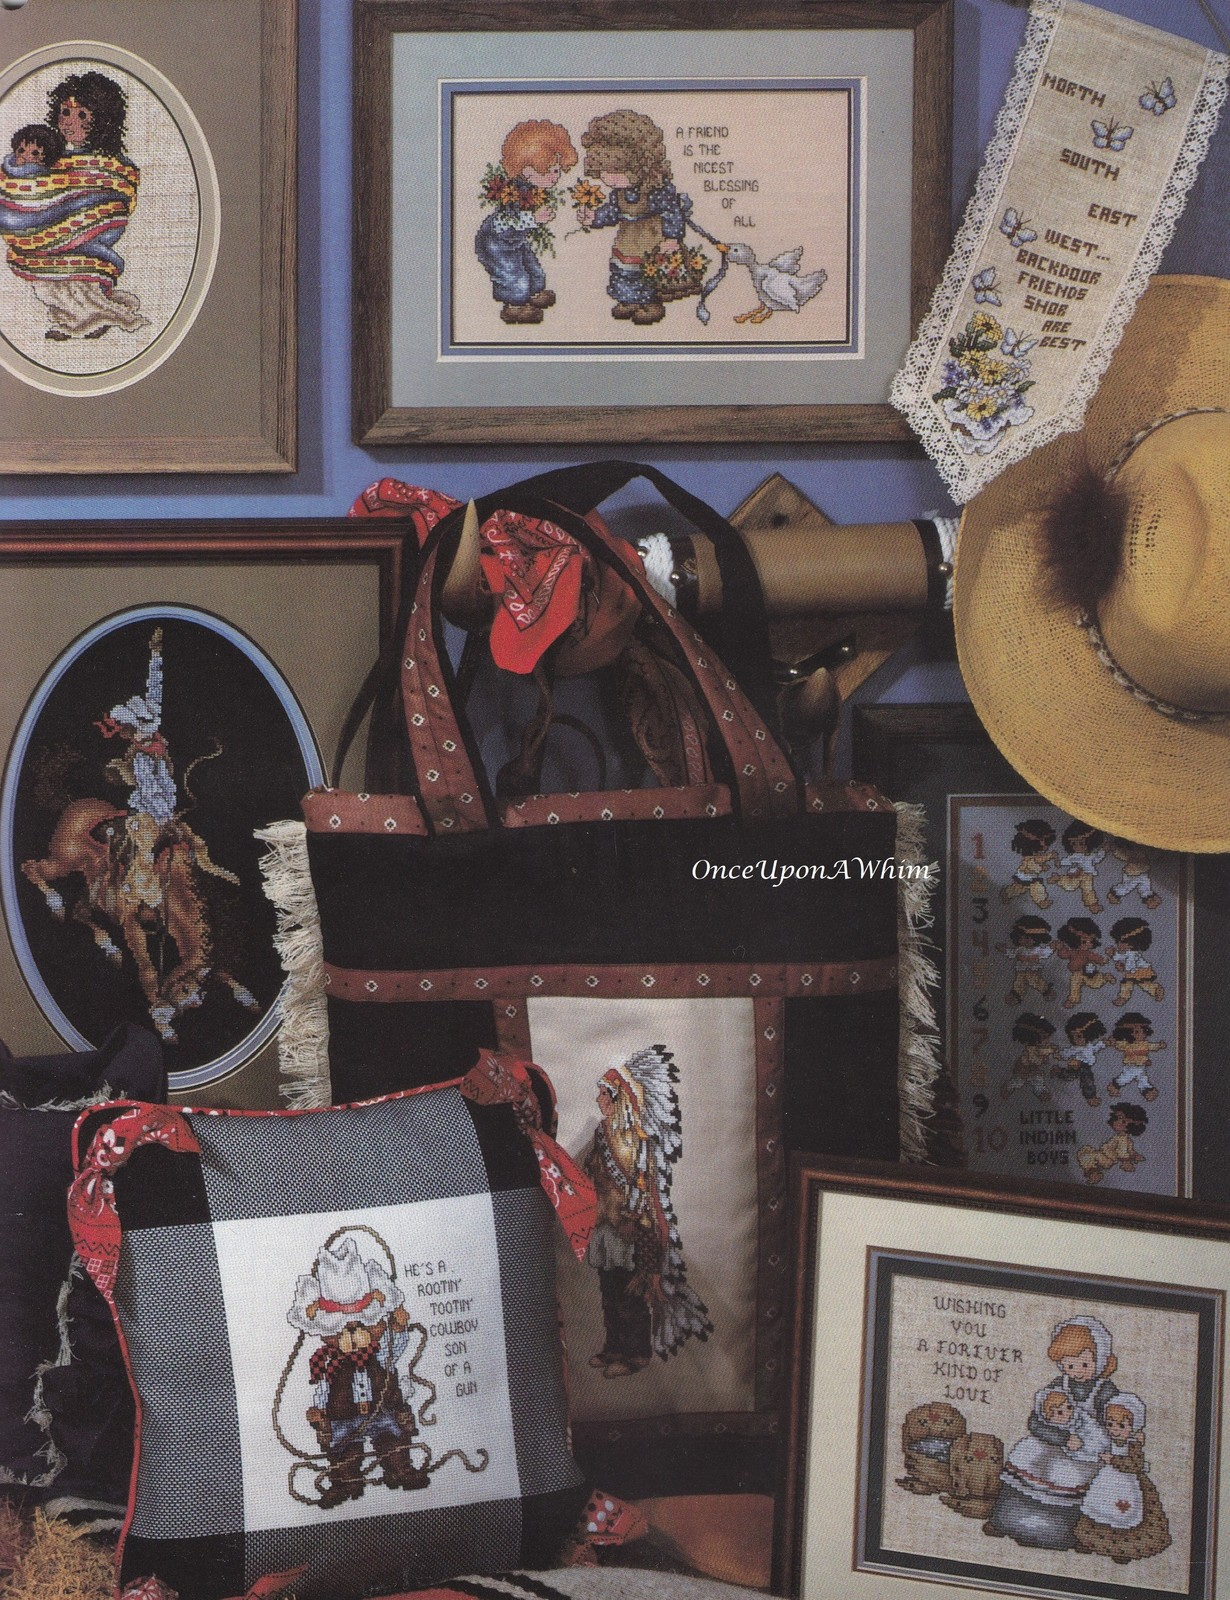 Best of the West, Stoney Creek Cowboy & Indians Cross Stitch Pattern Book 41